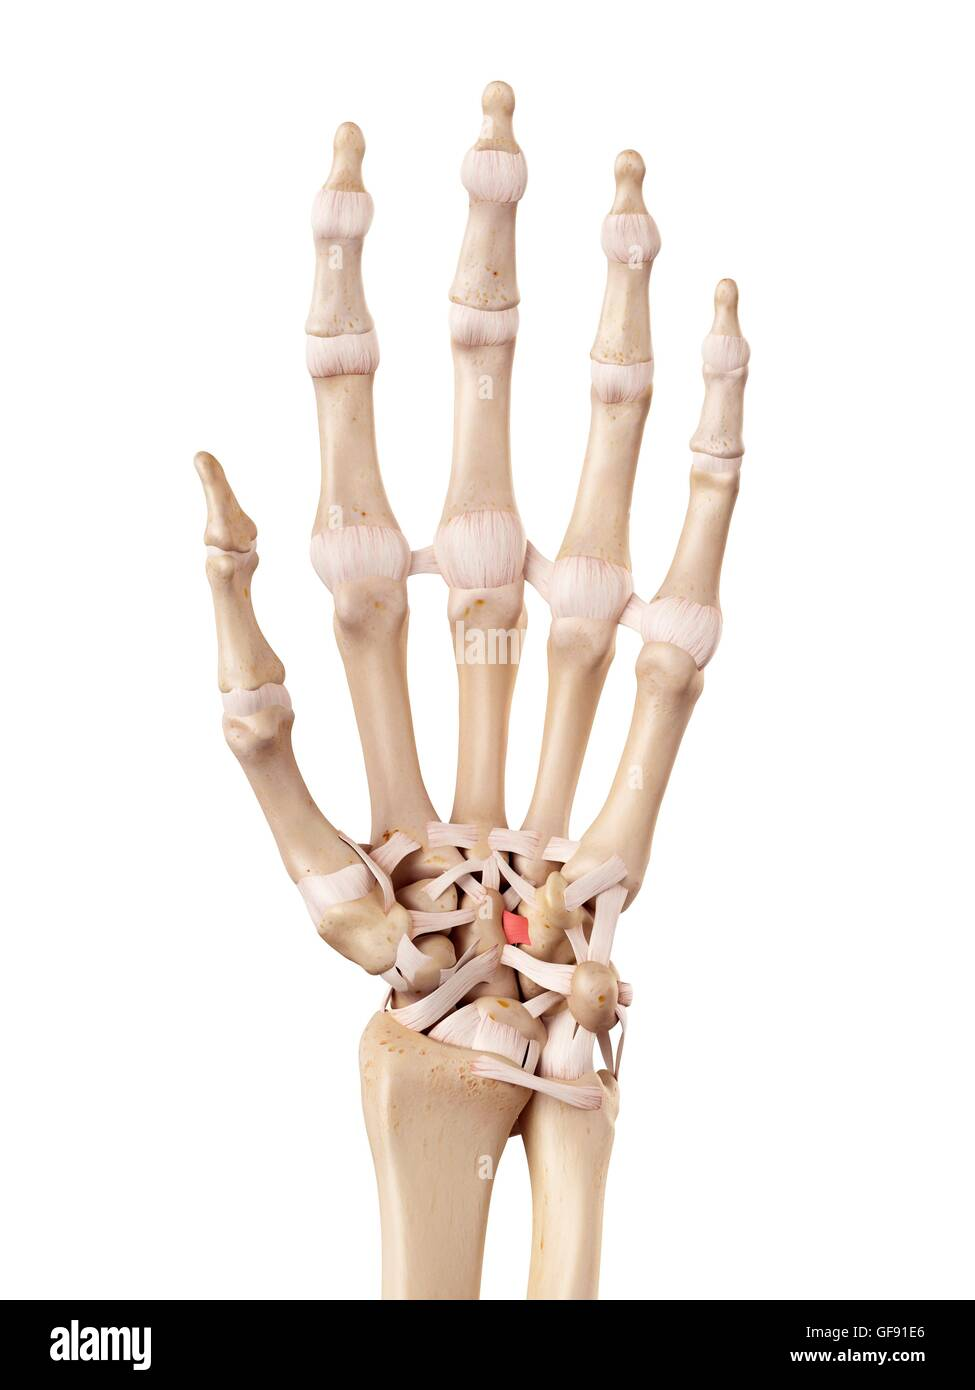 Ligaments Of The Human Hand Stockfotos & Ligaments Of The Human Hand ...